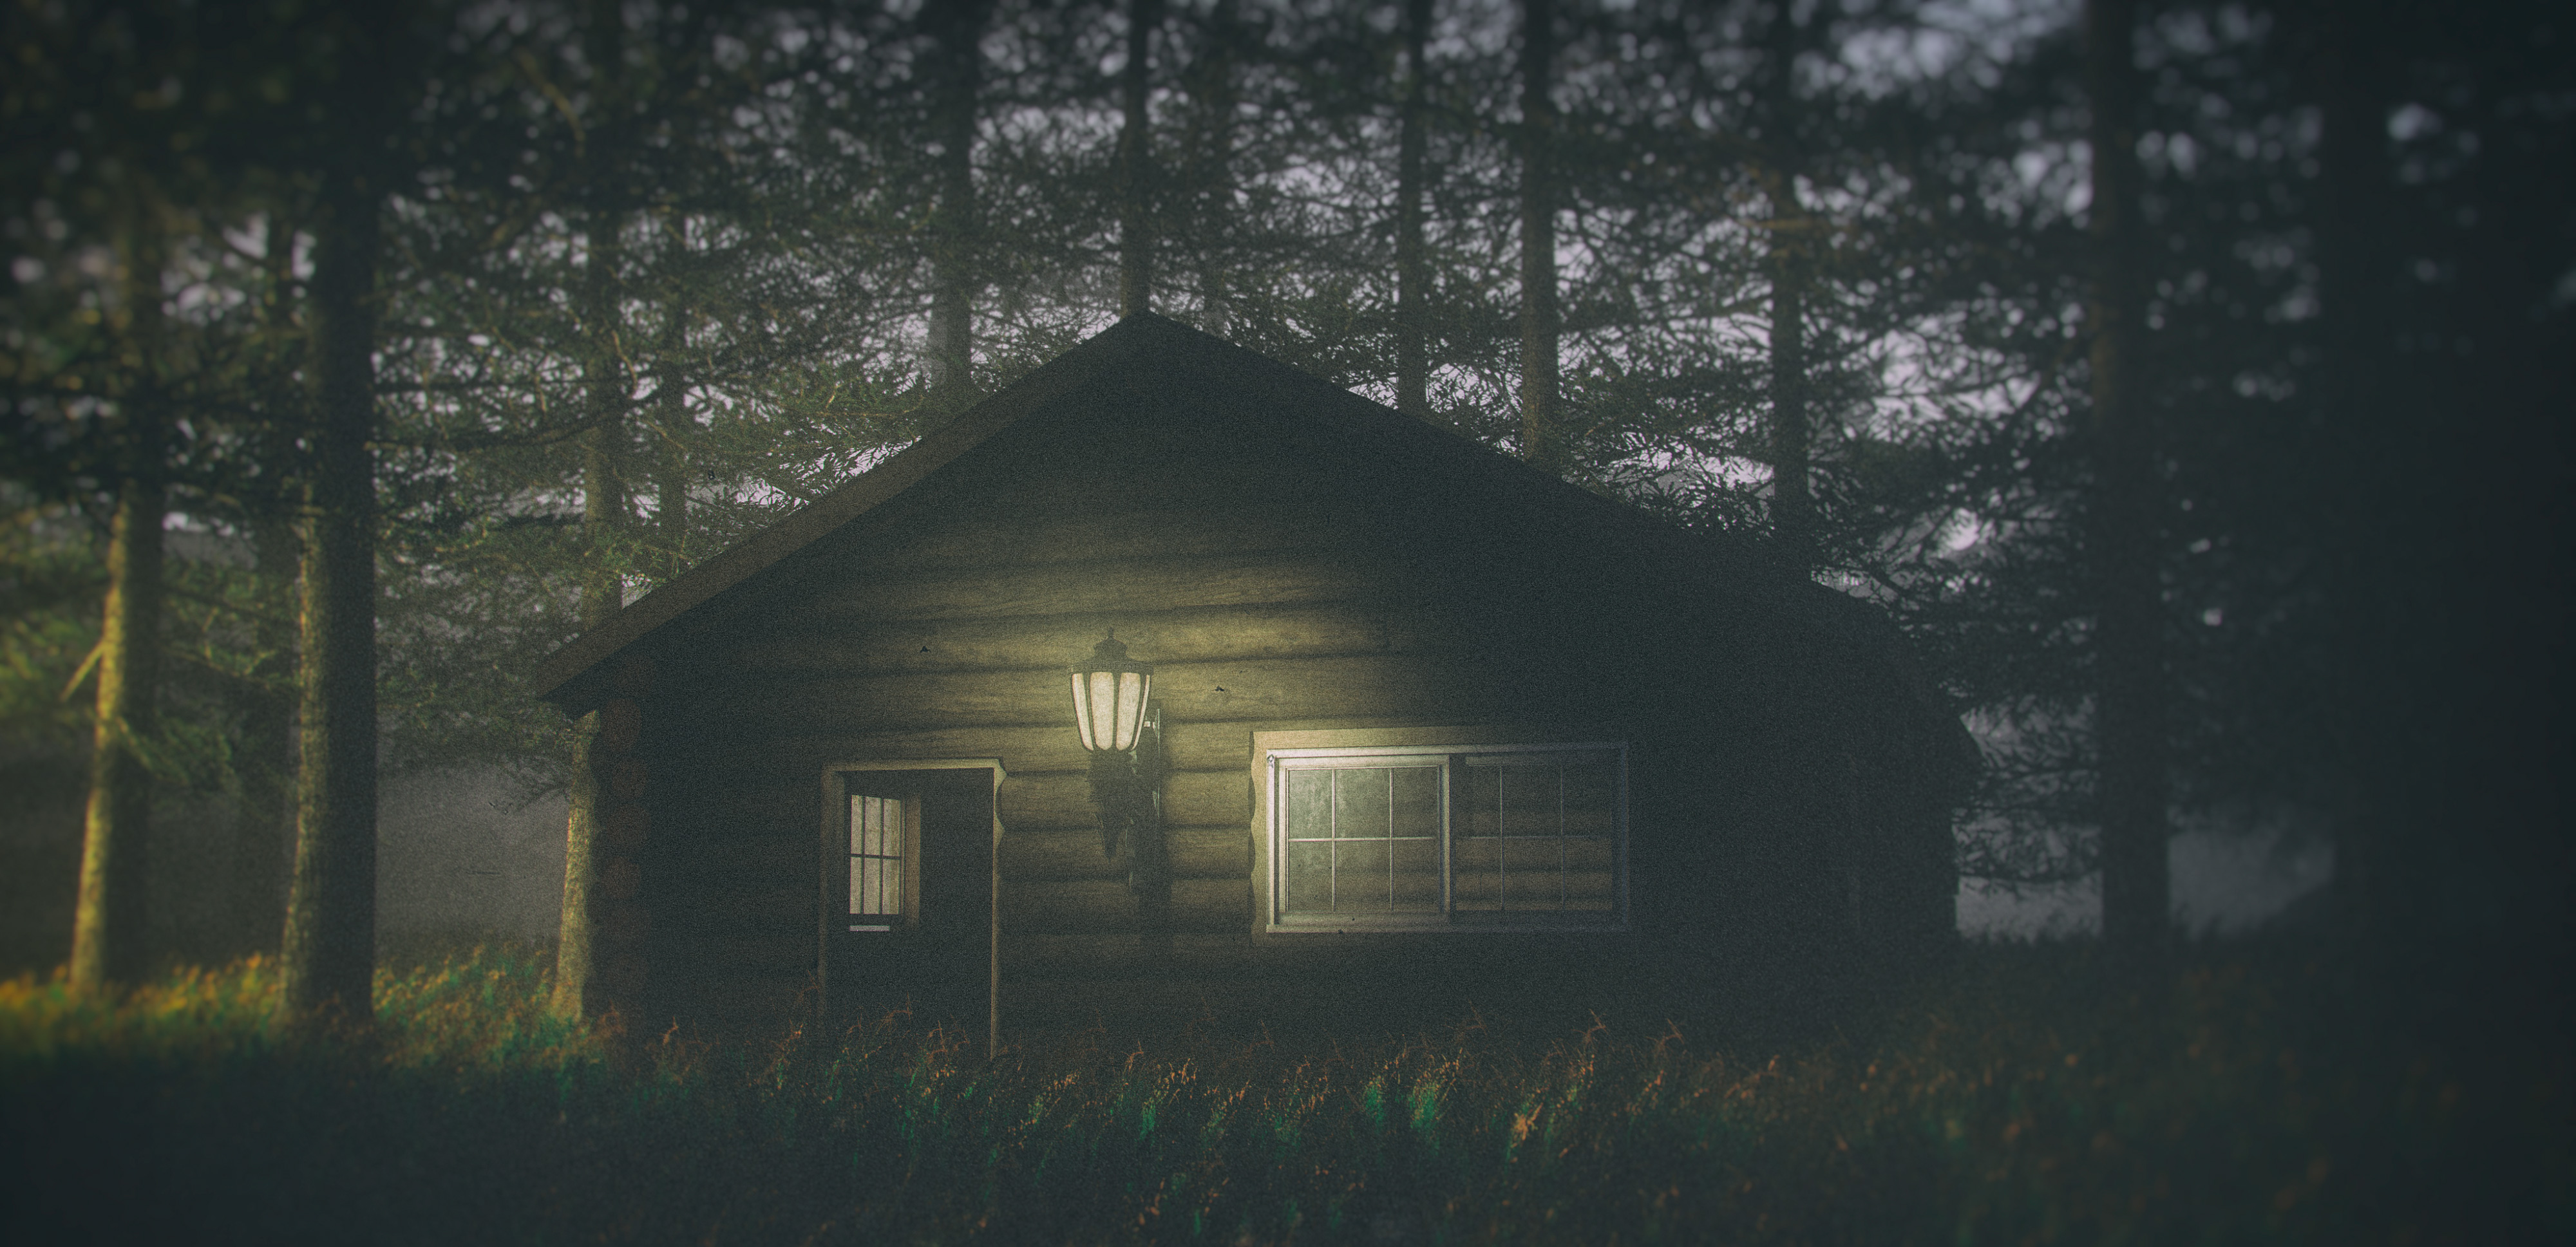 House In Forest Darkness 4k Hd Artist 4k Wallpapers